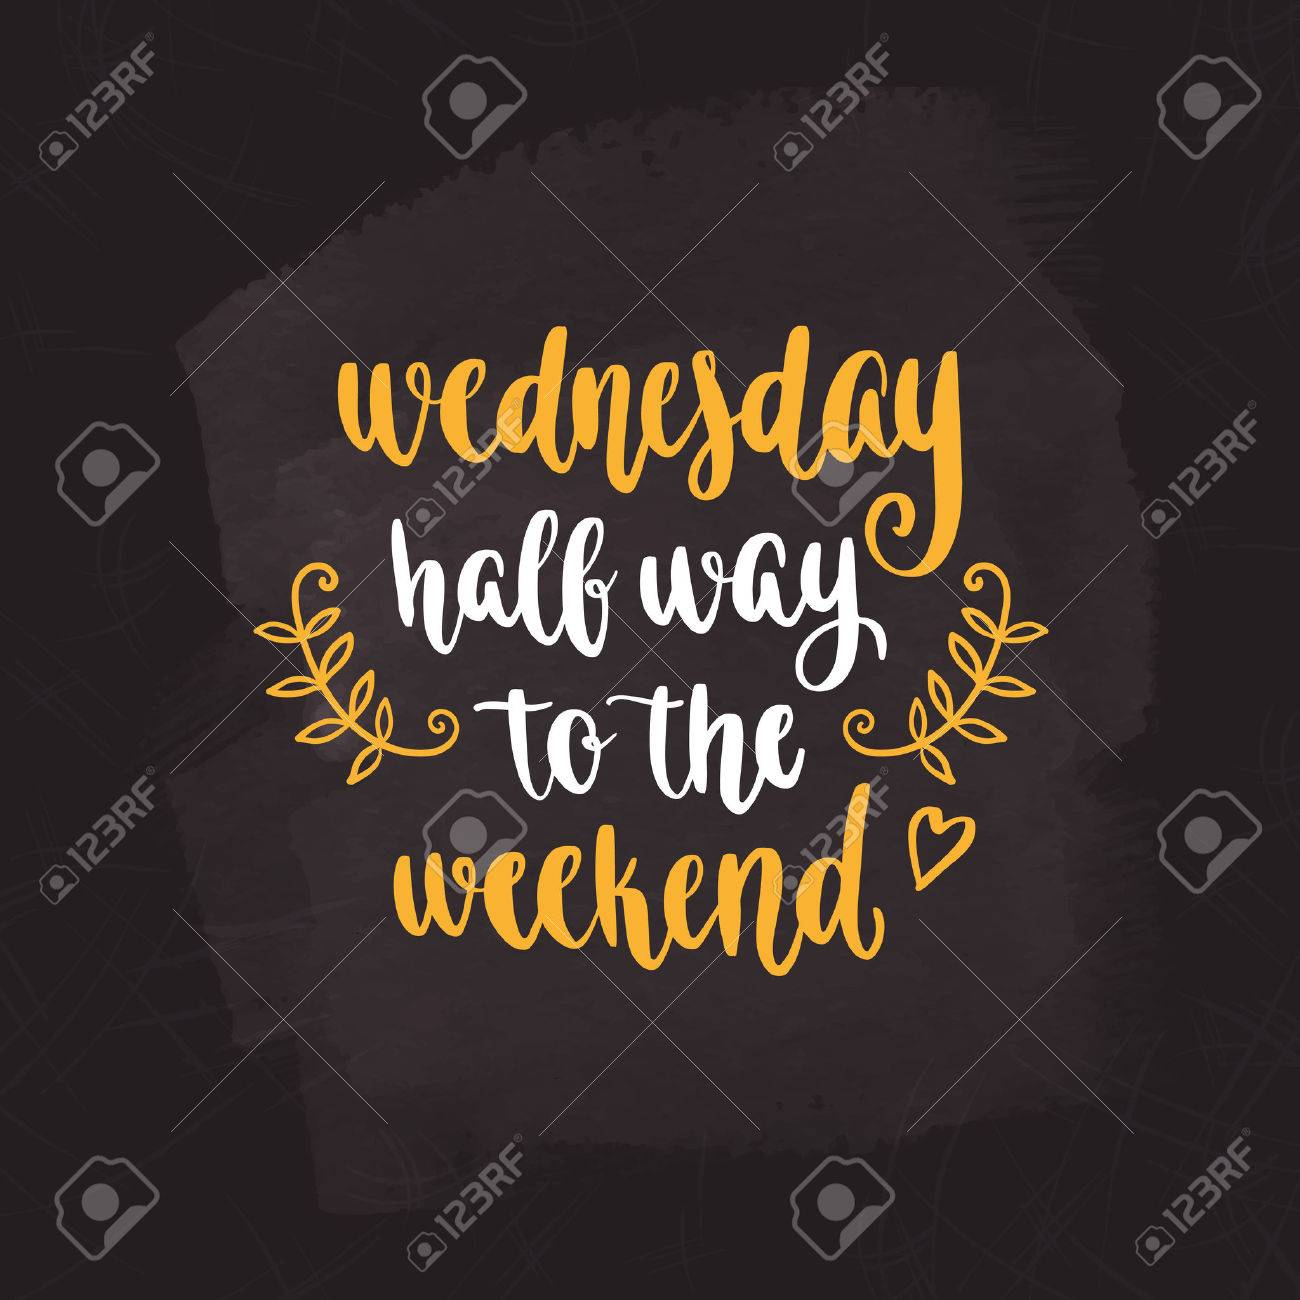 Week Days Motivation Quotes Wednesday Royalty Free Cliparts